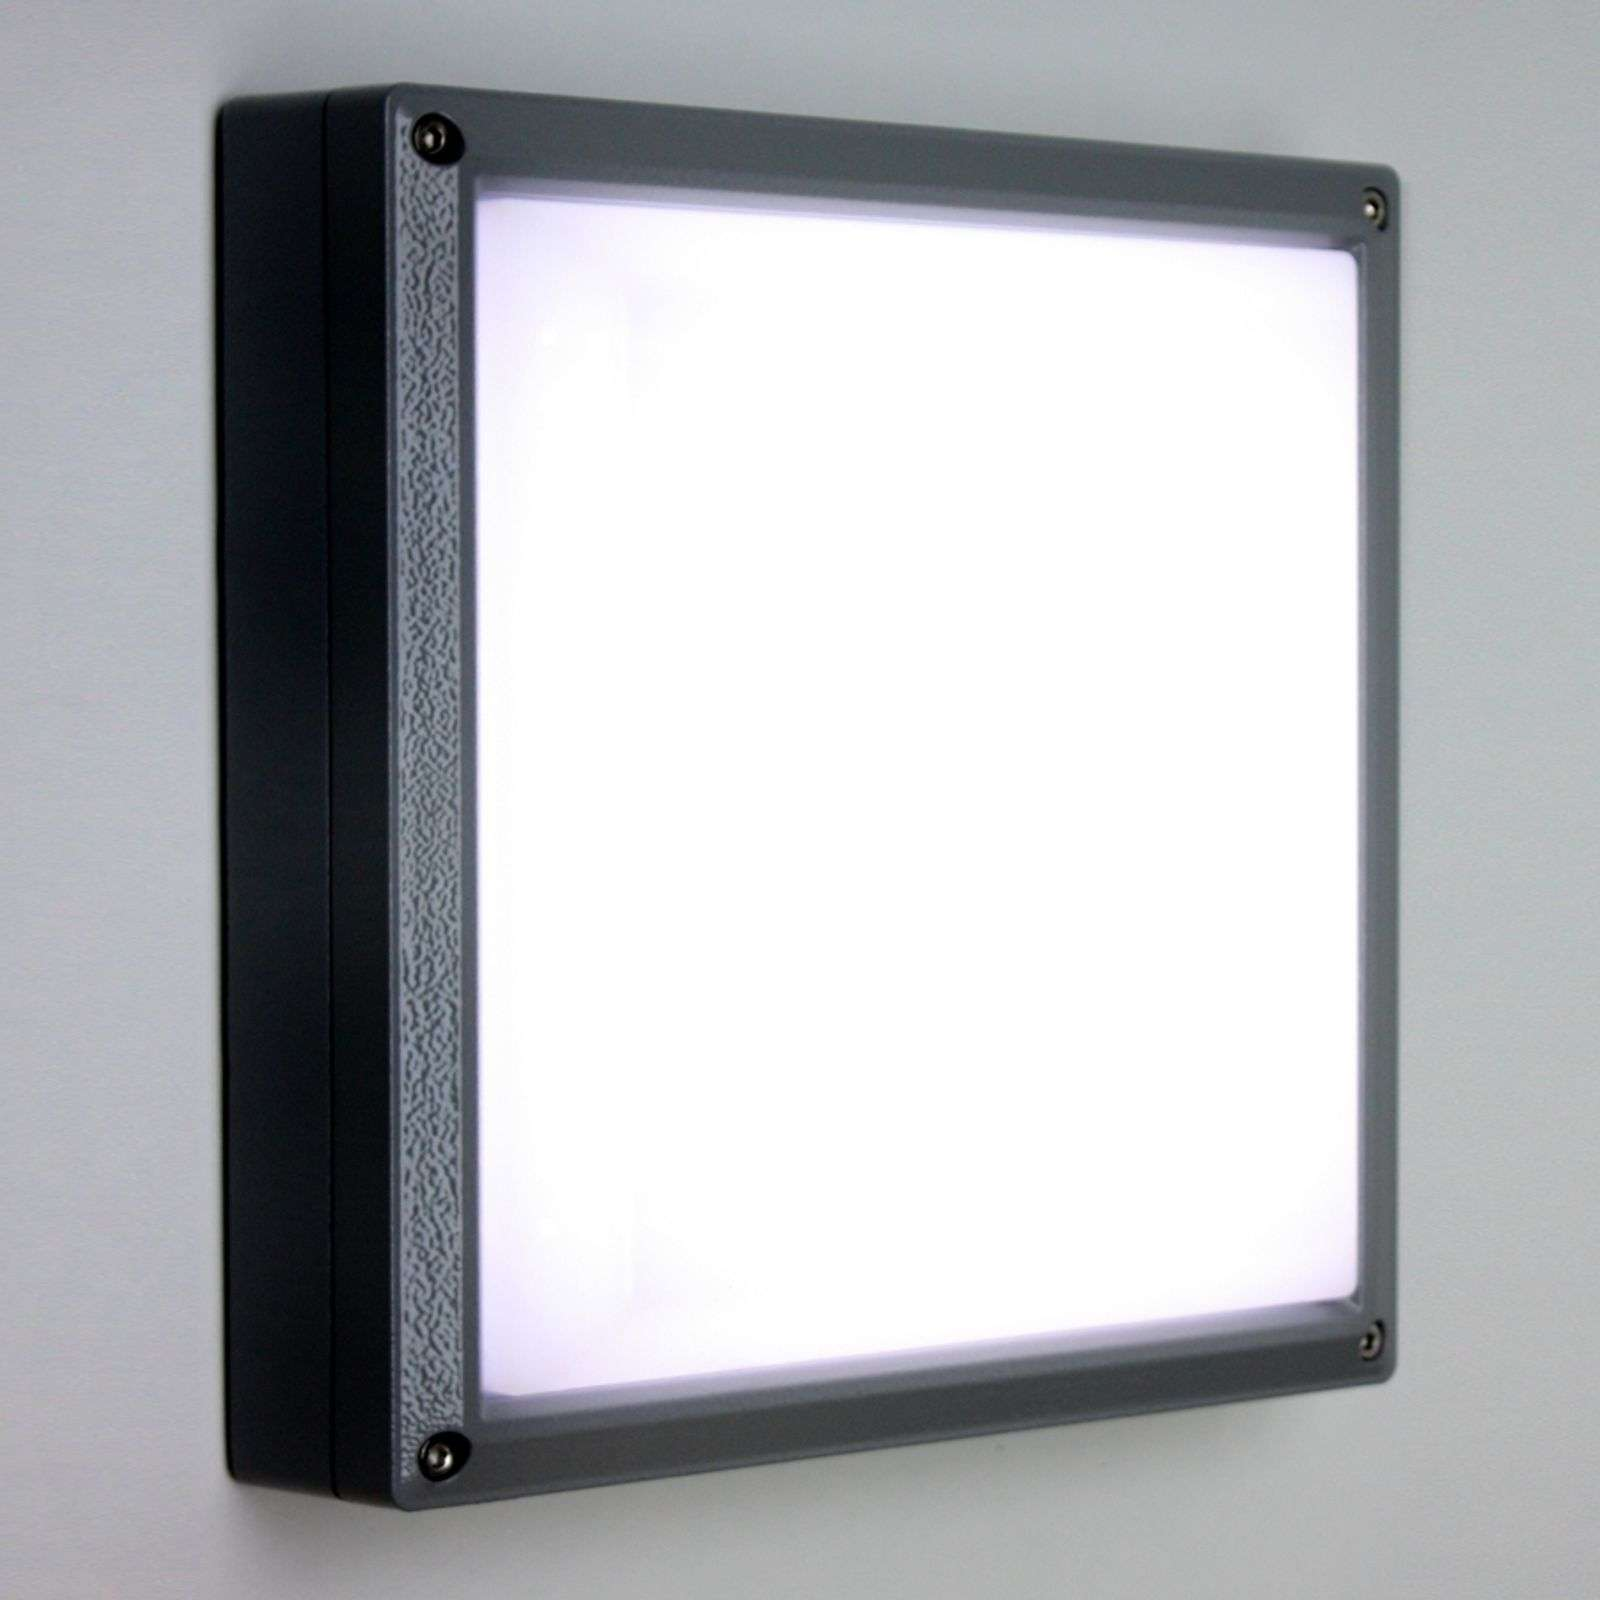 SUN 11 - applique LED 13W, antracite 4K